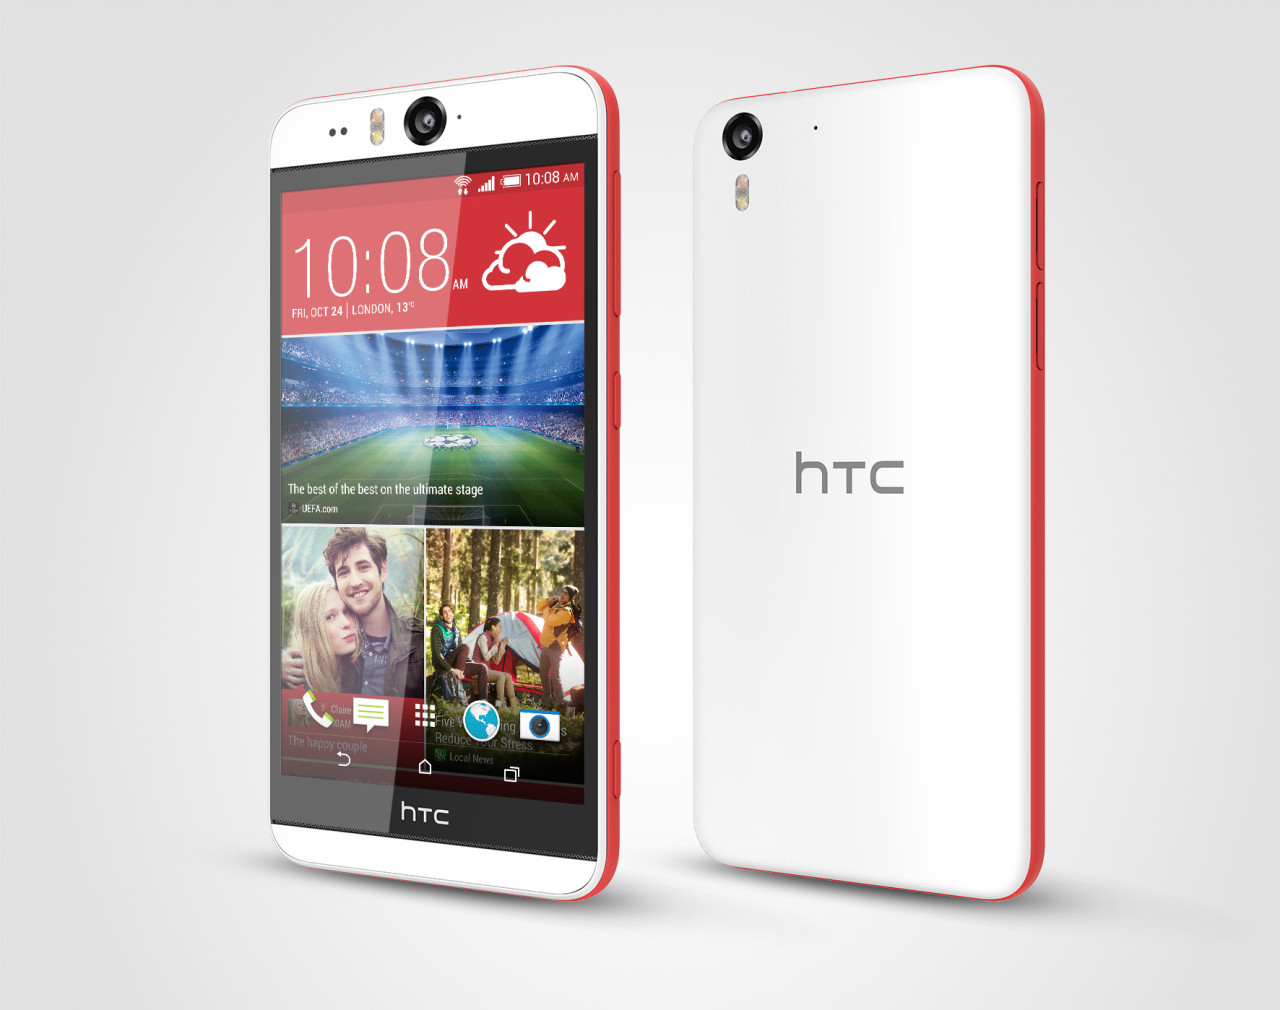 HTC-Desire-Eye-Matt-White-3-300-dpi-1280x1010.jpg